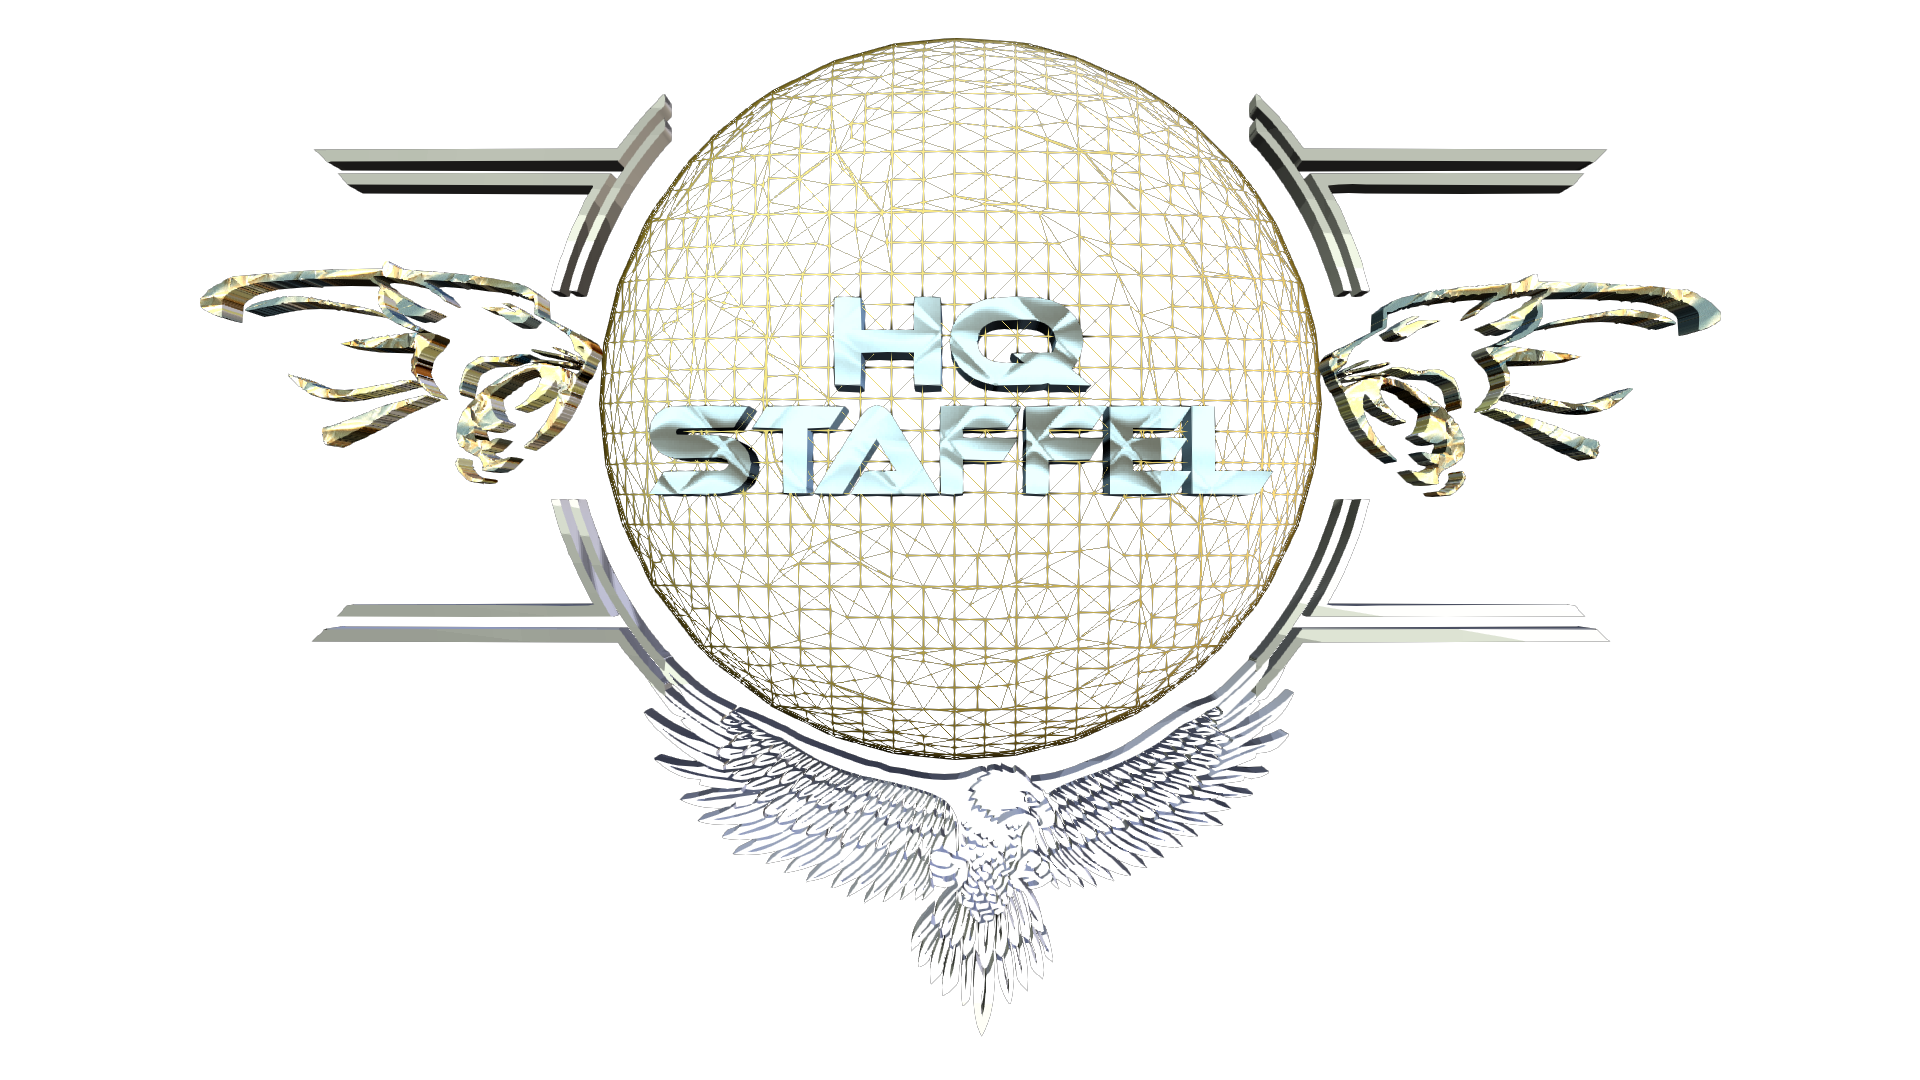 HQ-Staffel-Logo-No_17_Sirch.png